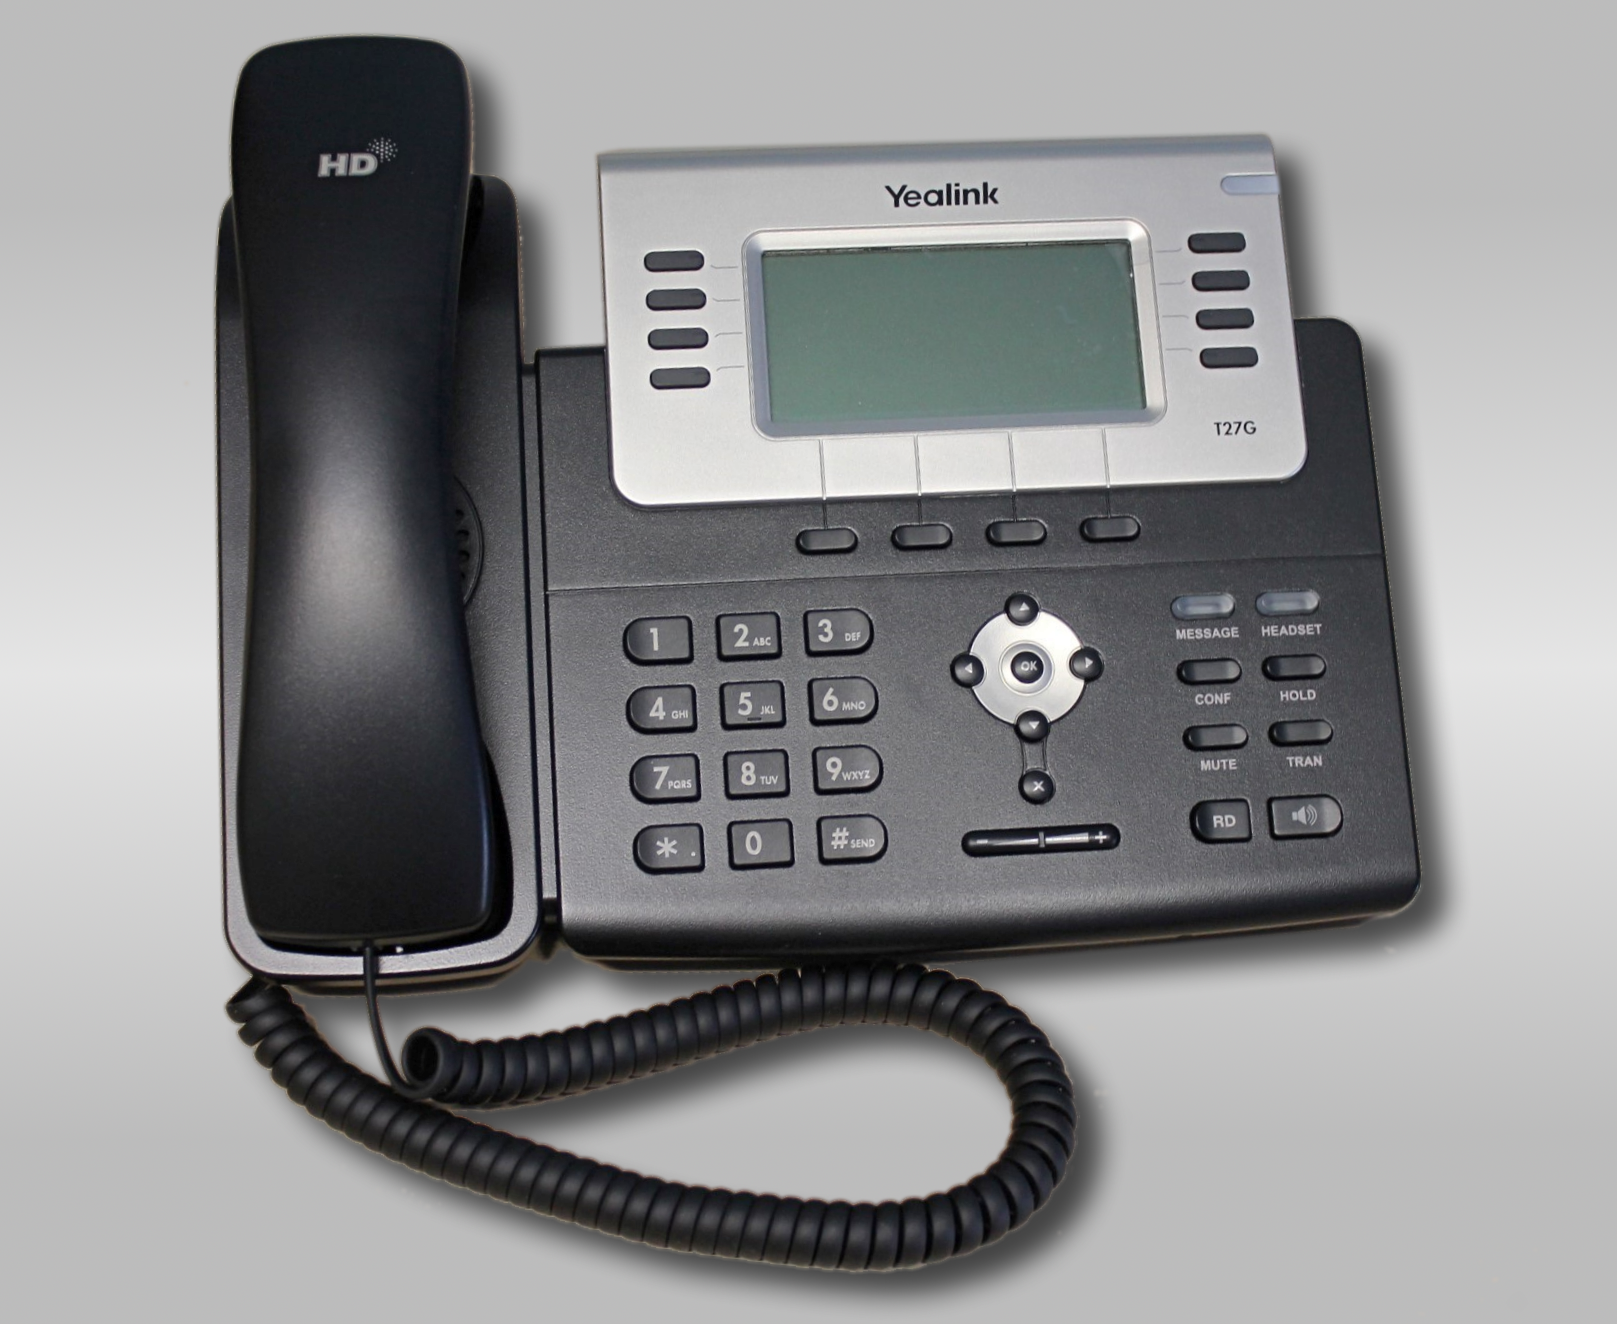 Yalink Telephone set